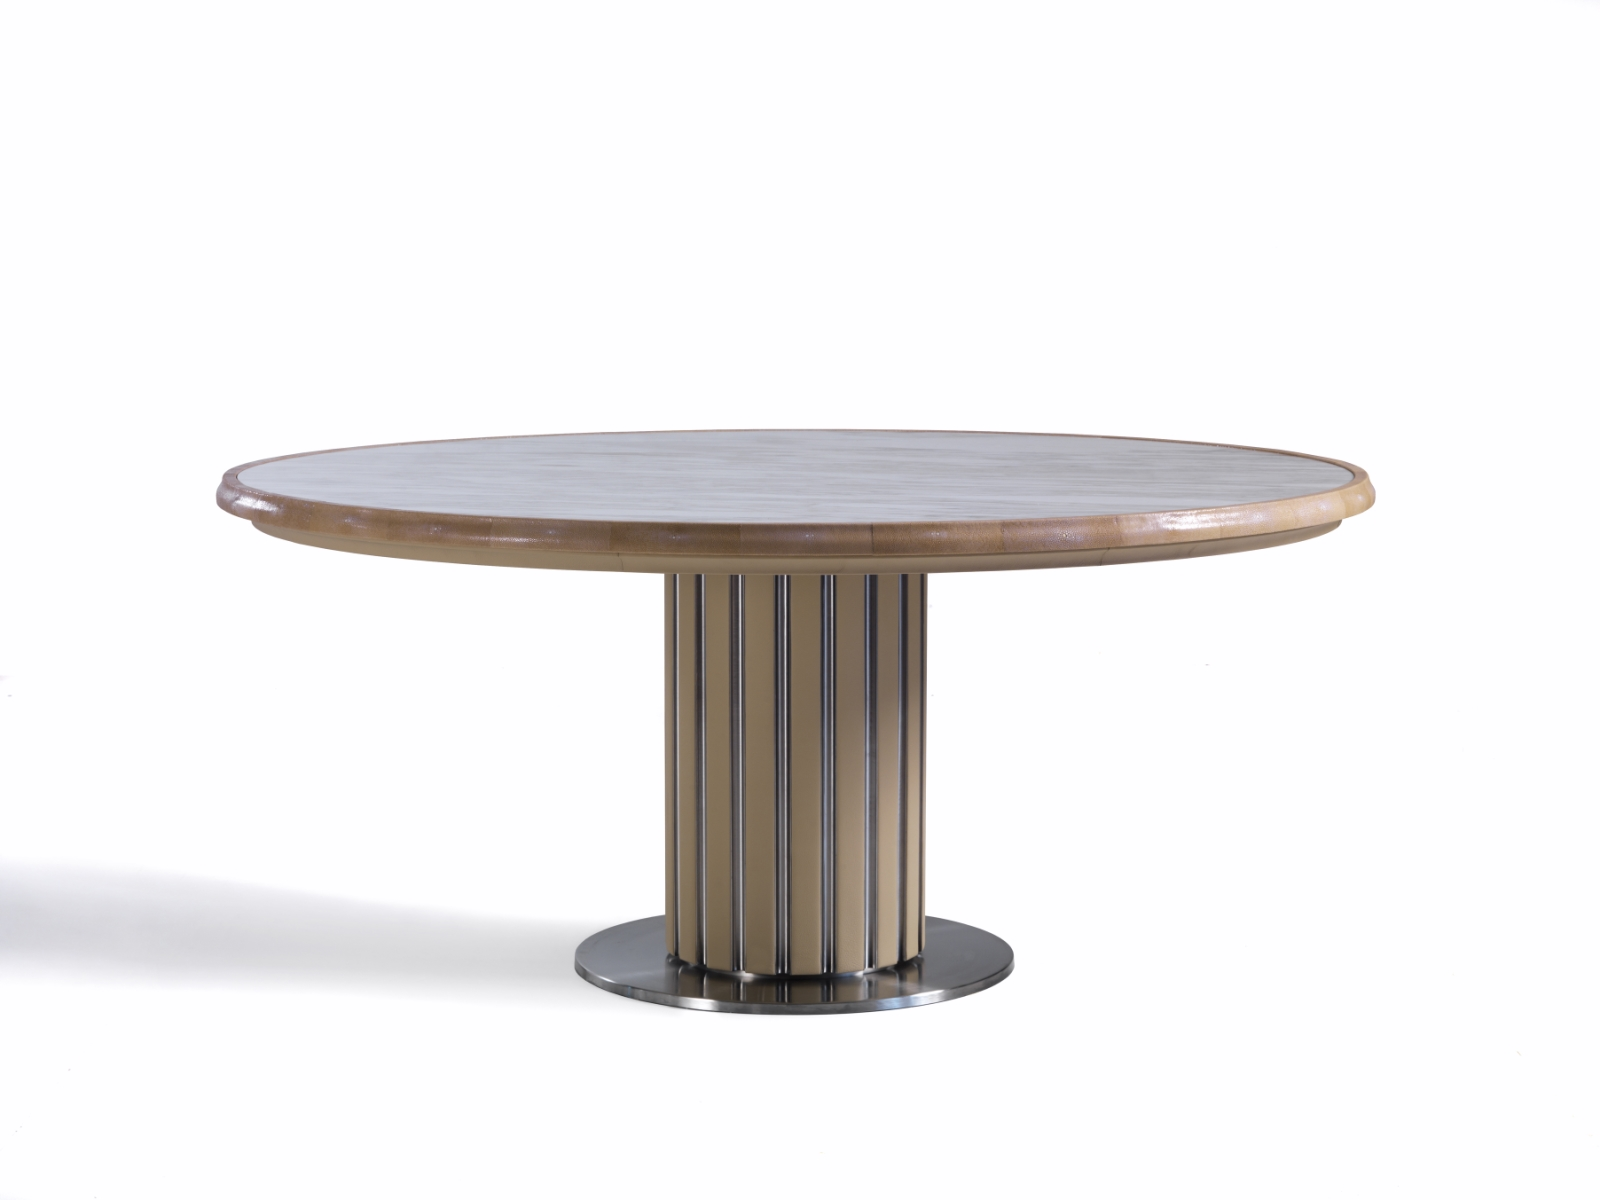 Annibale Colombo Dining Table made bespoke for the superyacht project   Masha Shapiro Agency.jpg